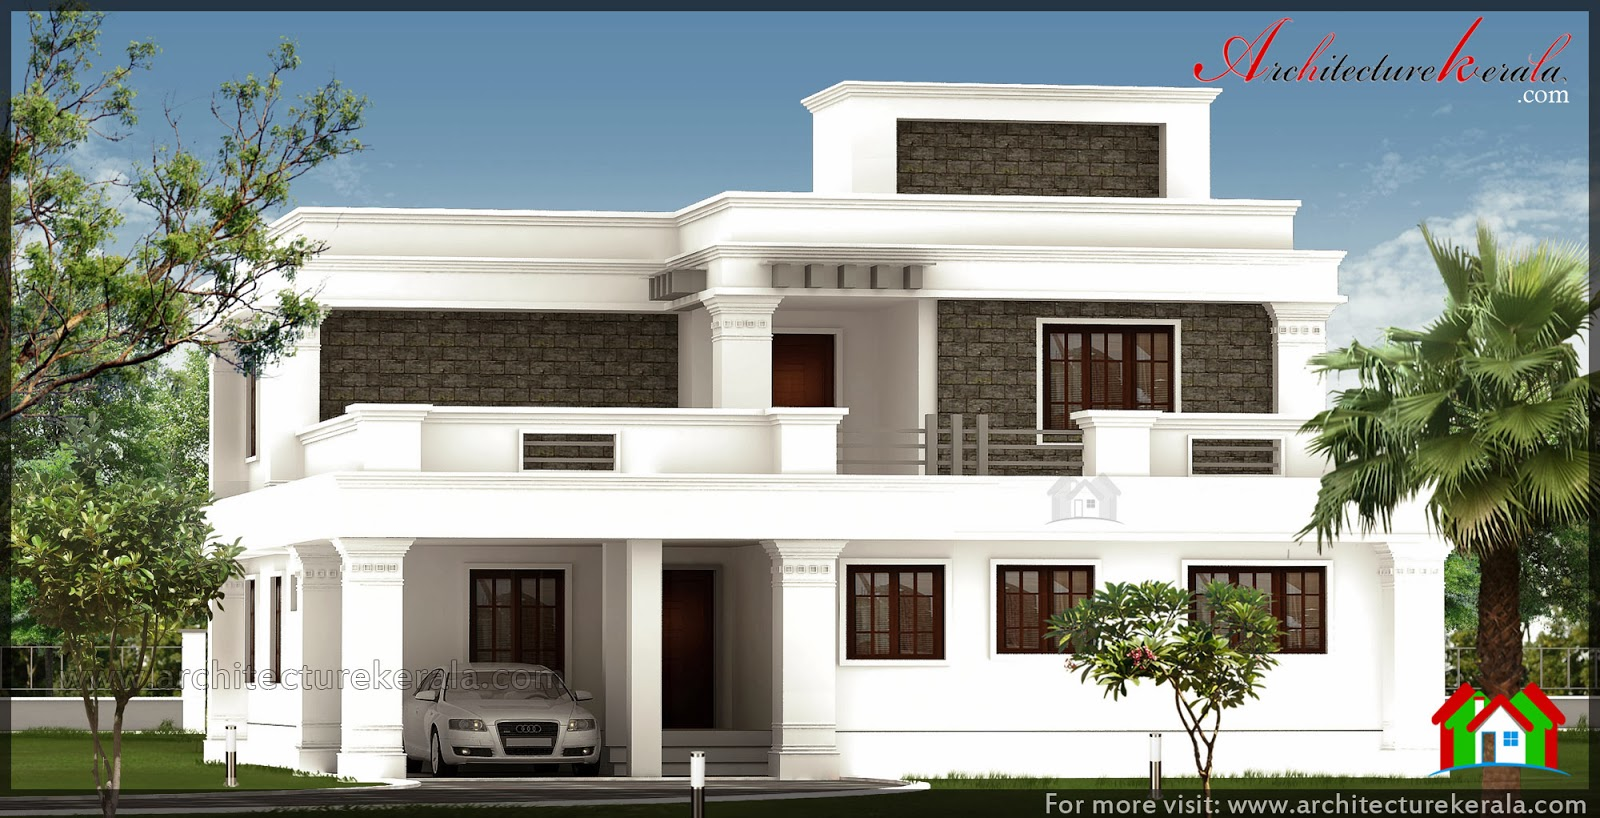 2400 square feet house design architecture kerala Indian house plans designs picture gallery